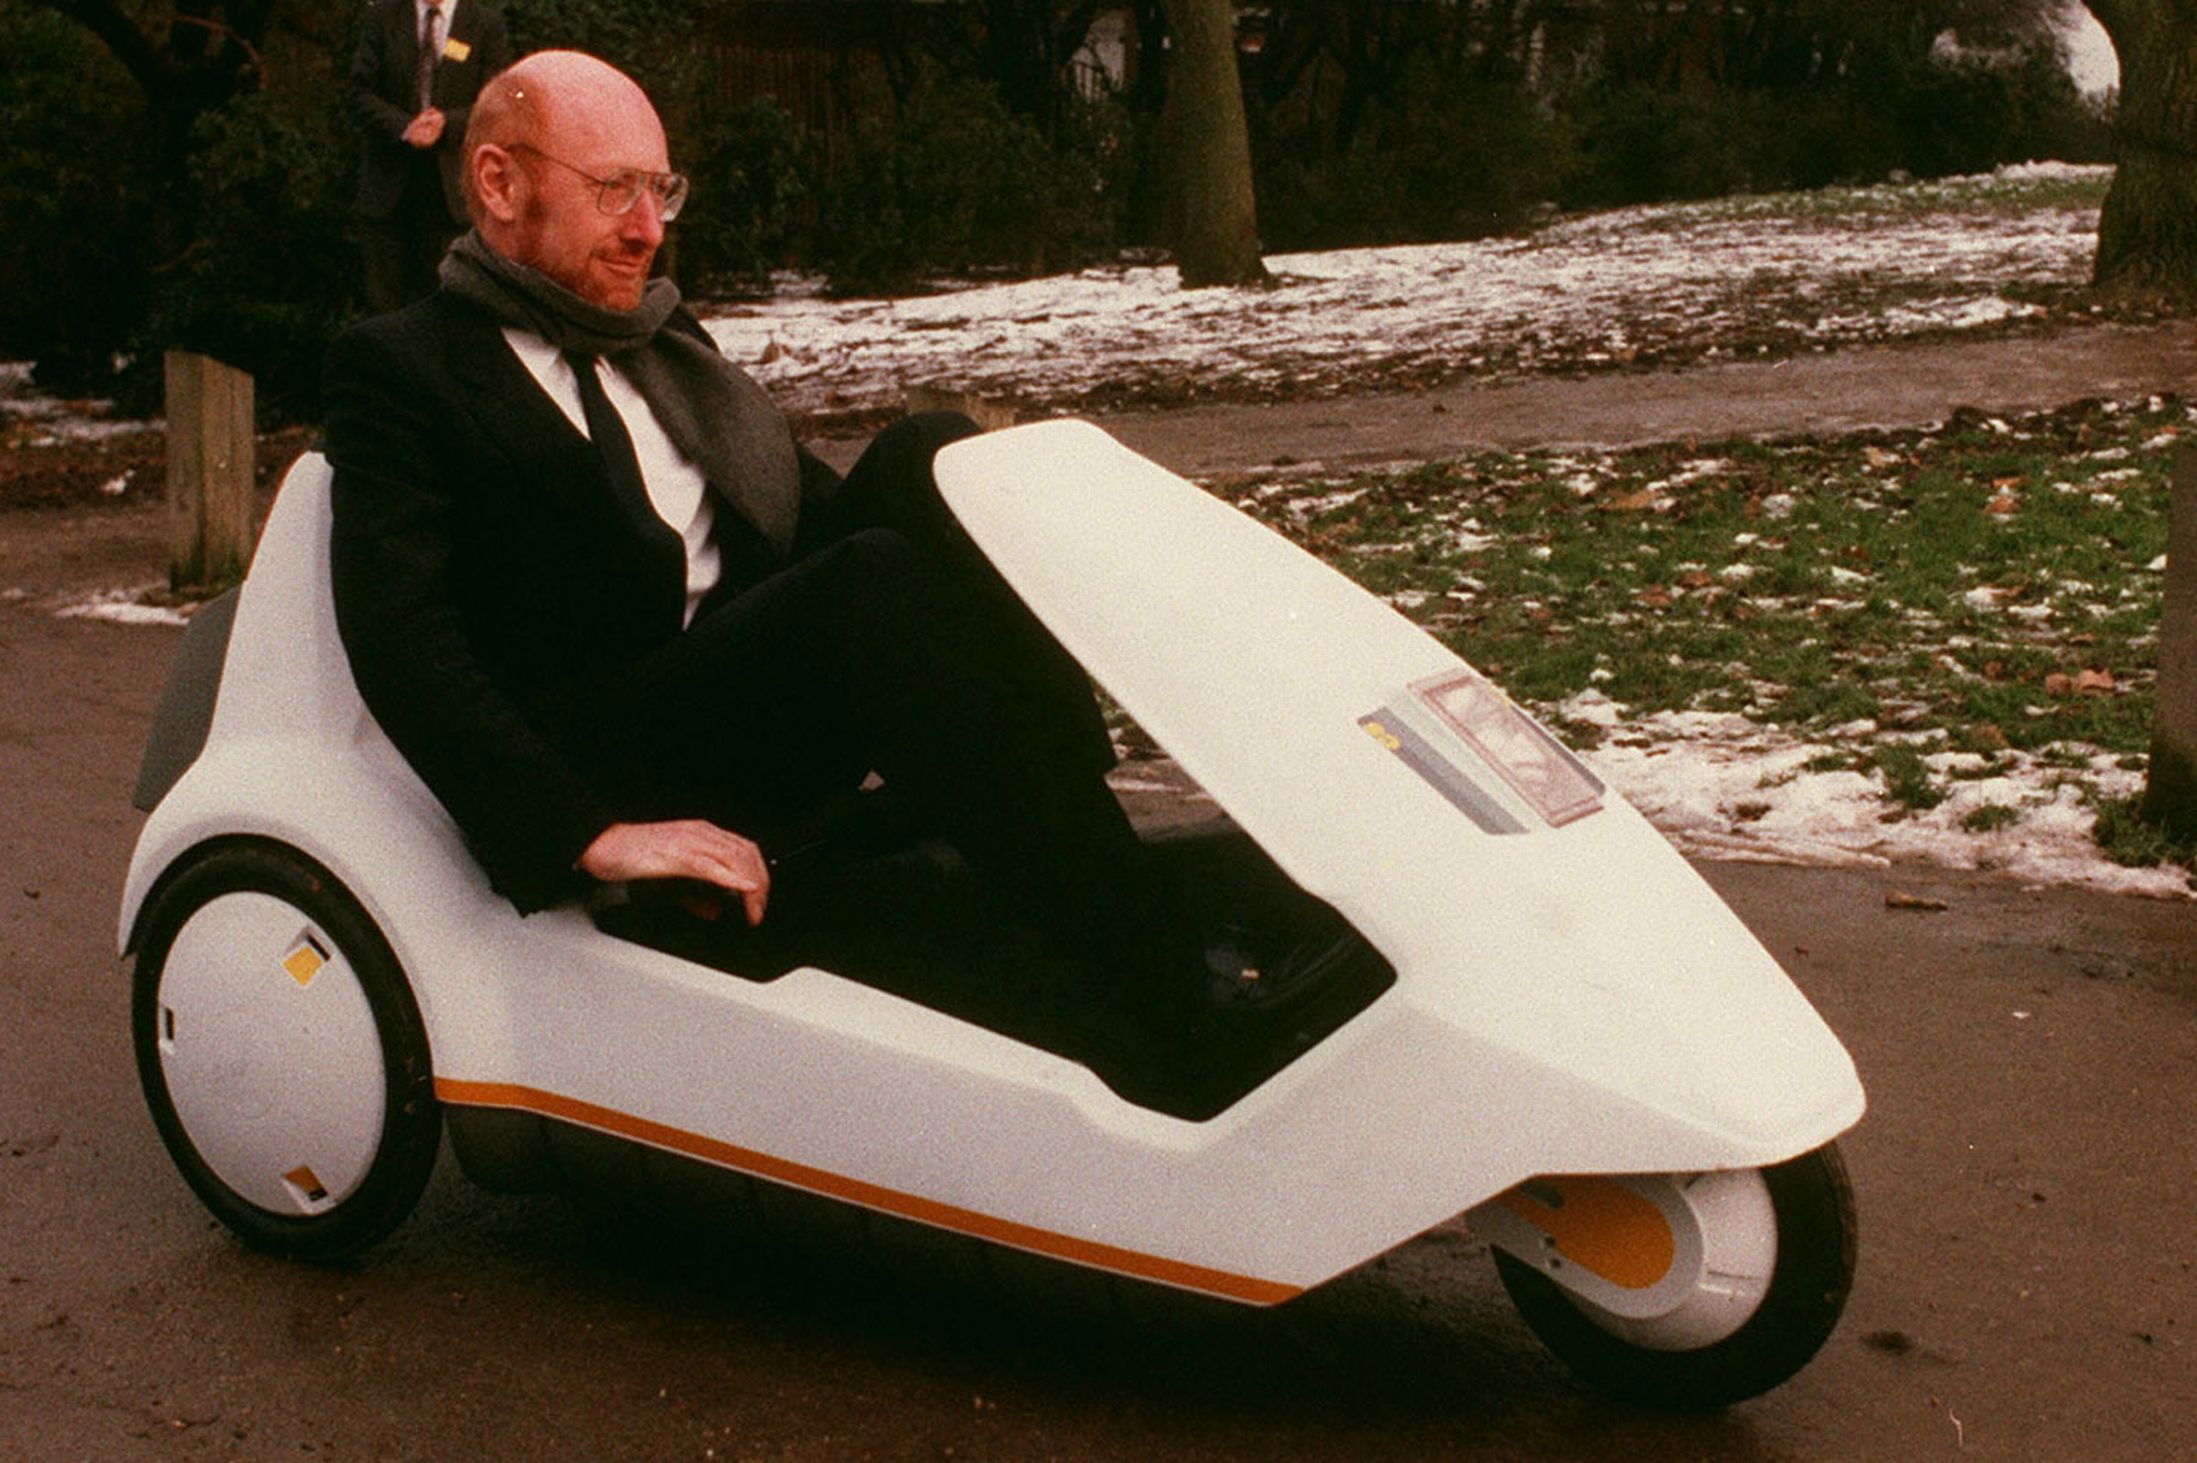 The Sinclair C5 with Clive Sinclair sat inside, the last nail in the coffin for Sinclair as a company